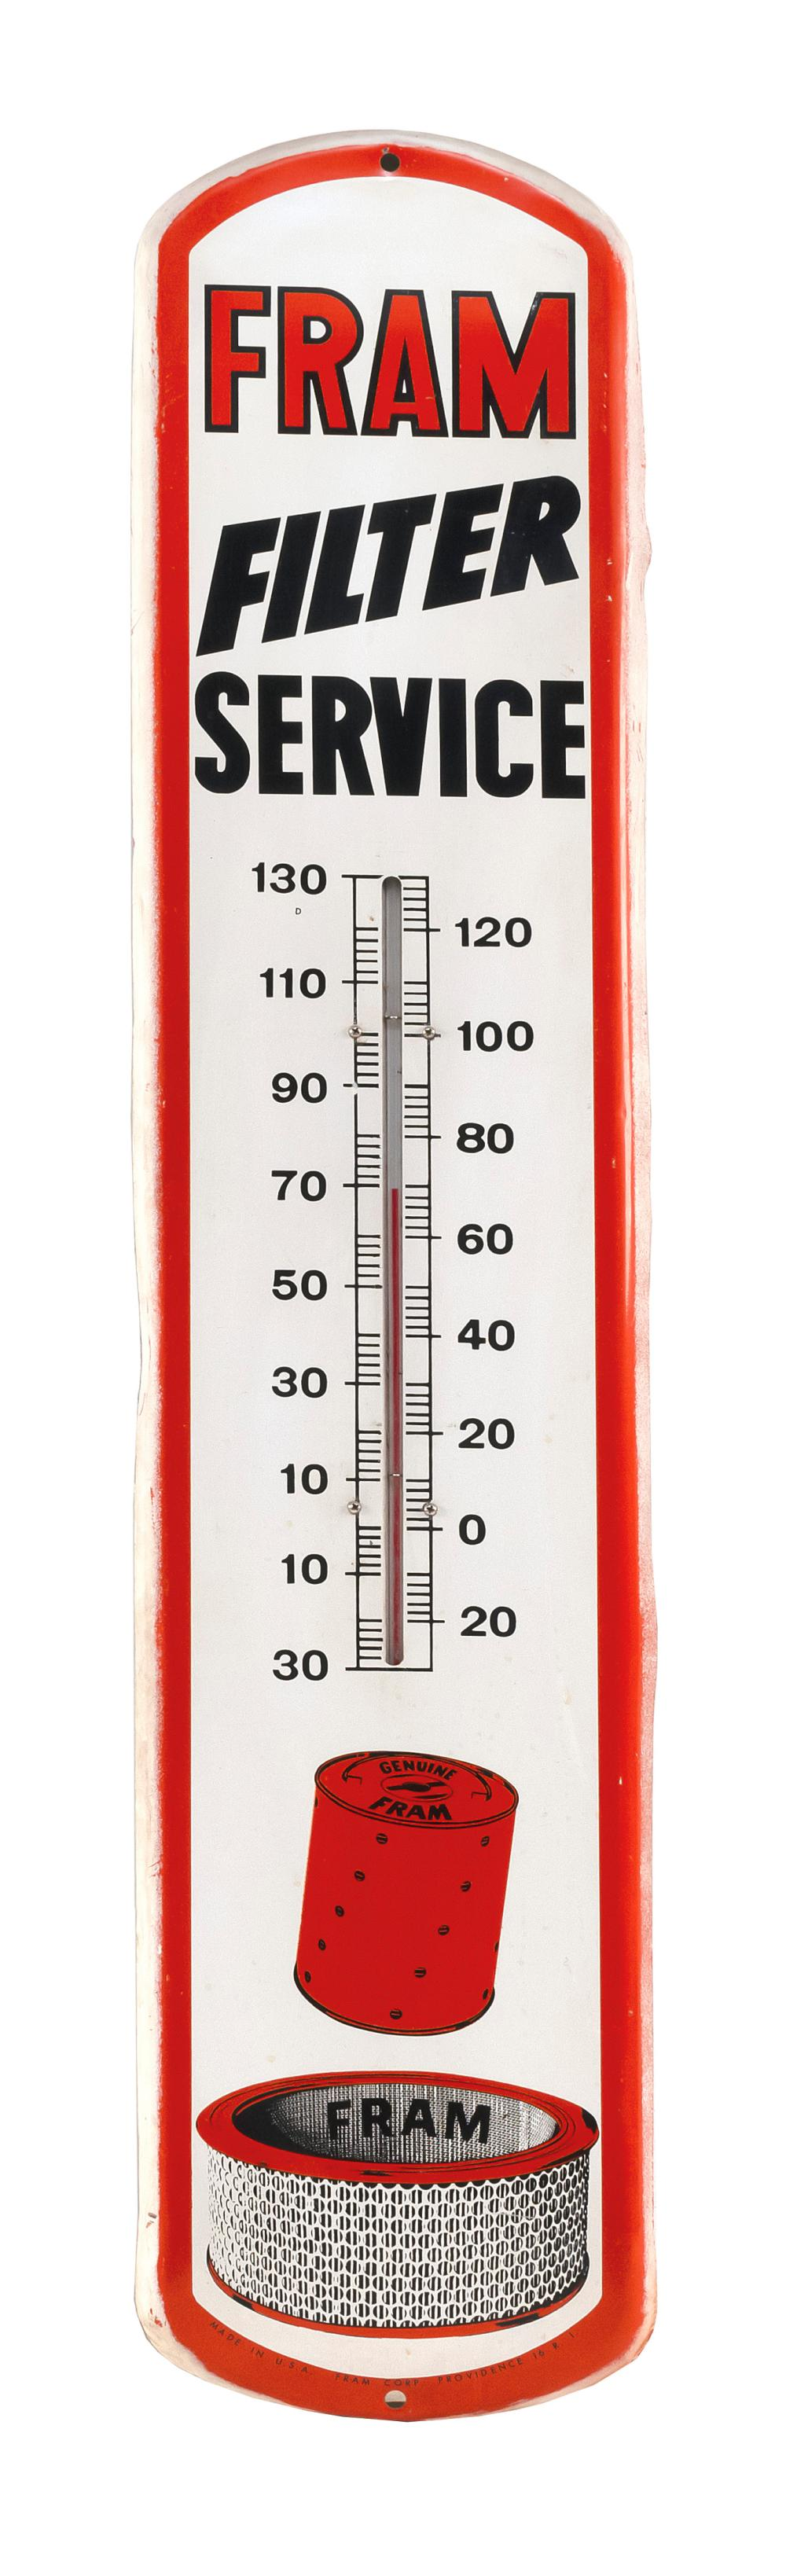 """VINTAGE OIL FILTER SERVICE STATION THERMOMETER """"Fram Filter Service"""" in orange and black lettering on a cream-colored ground. Fitted..."""